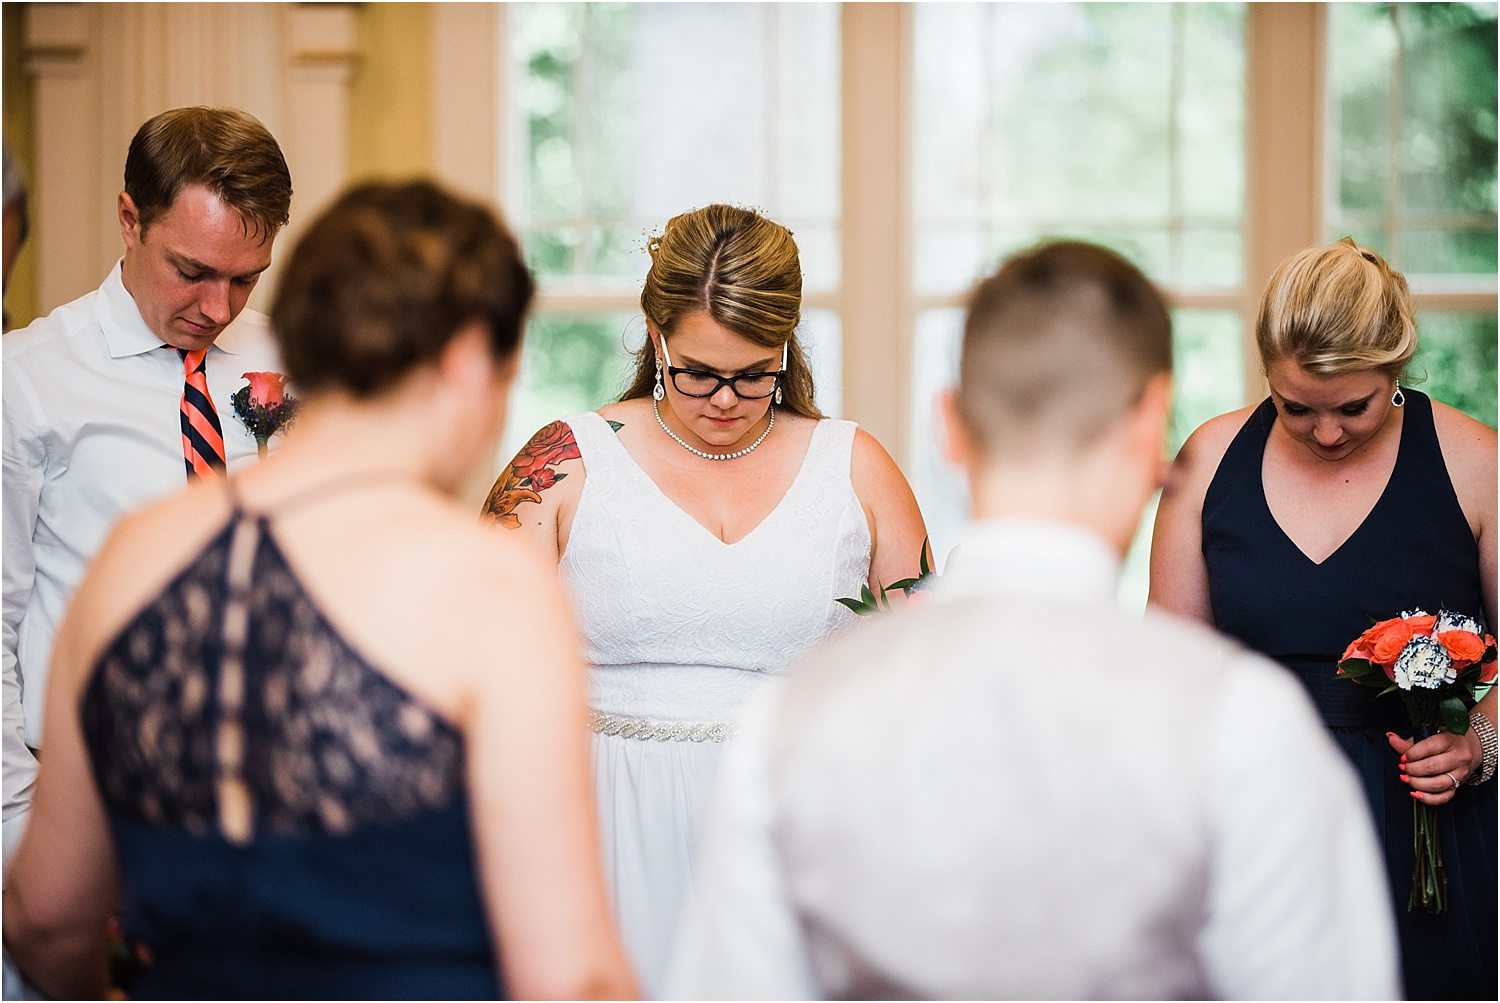 The_Riverview_Simsbury_Connecticut_Wedding_LGBT_Weddings_021.jpg